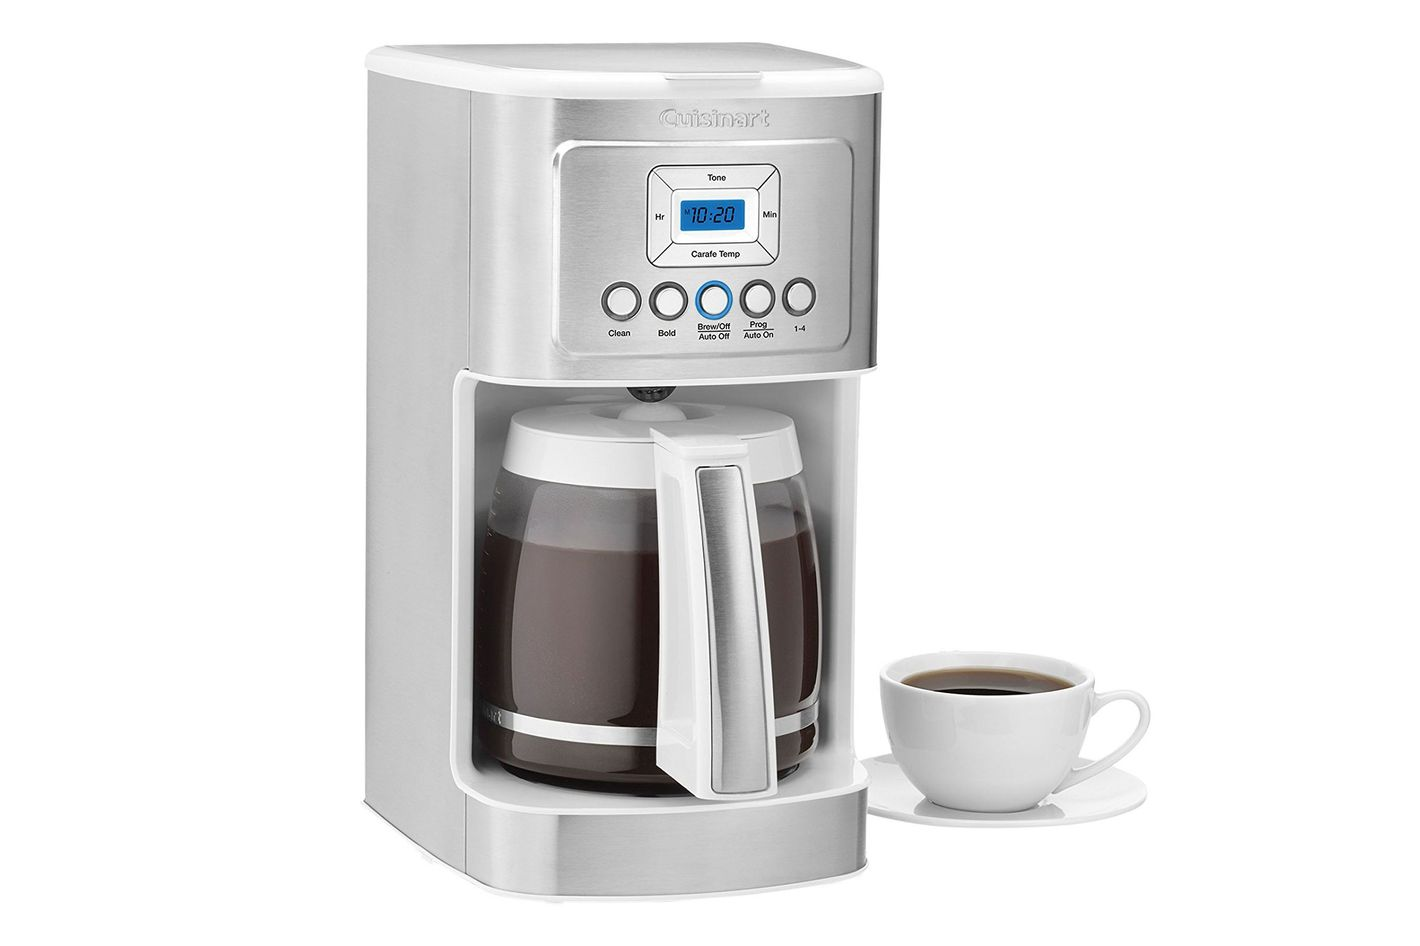 Good Coffee Makers Home Use : 11 Best Coffee Makers for Brewing at Home